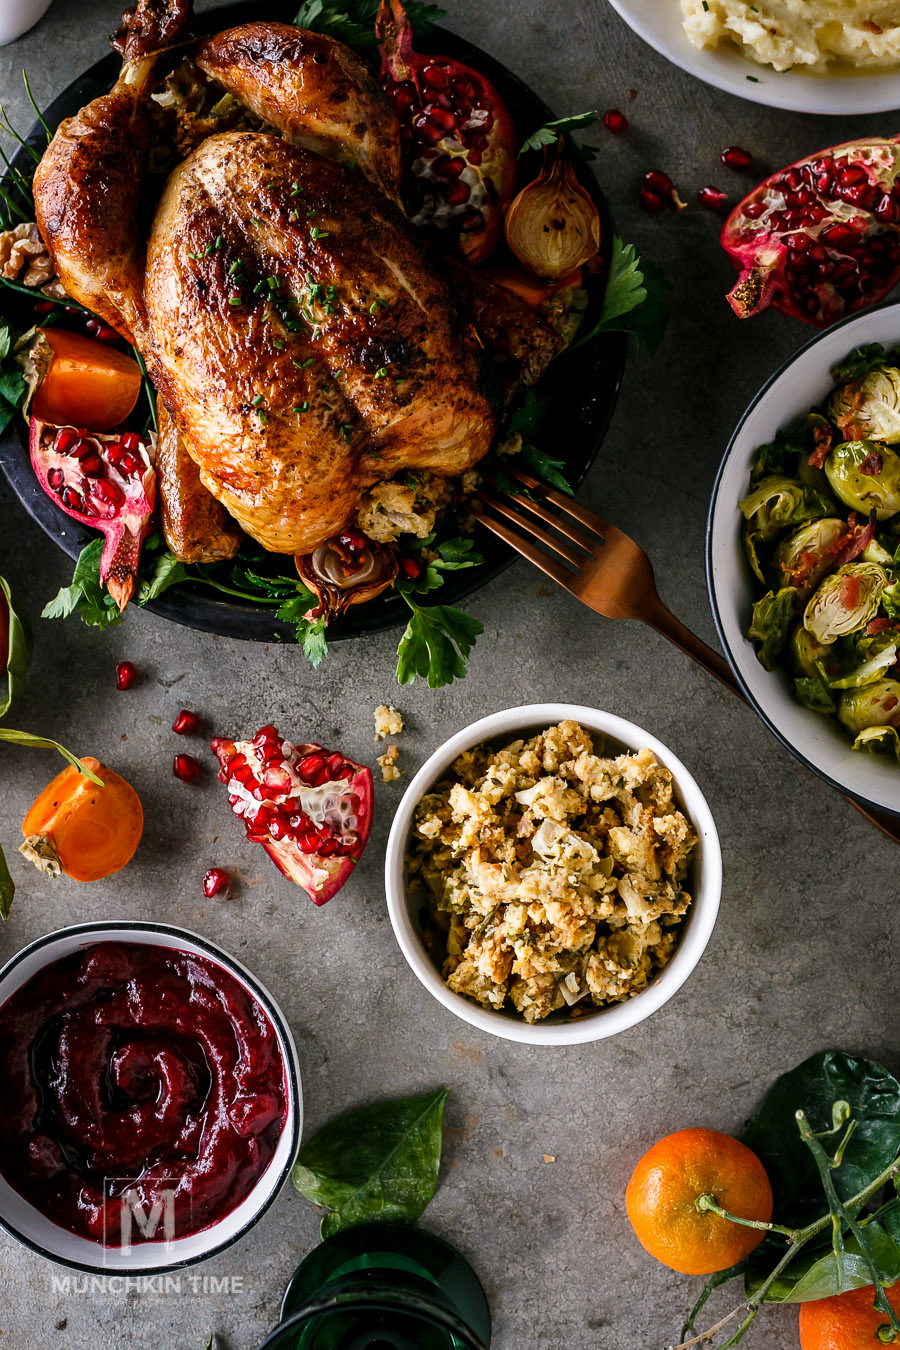 What Foods Do People Eat On Thanksgiving For Dinner